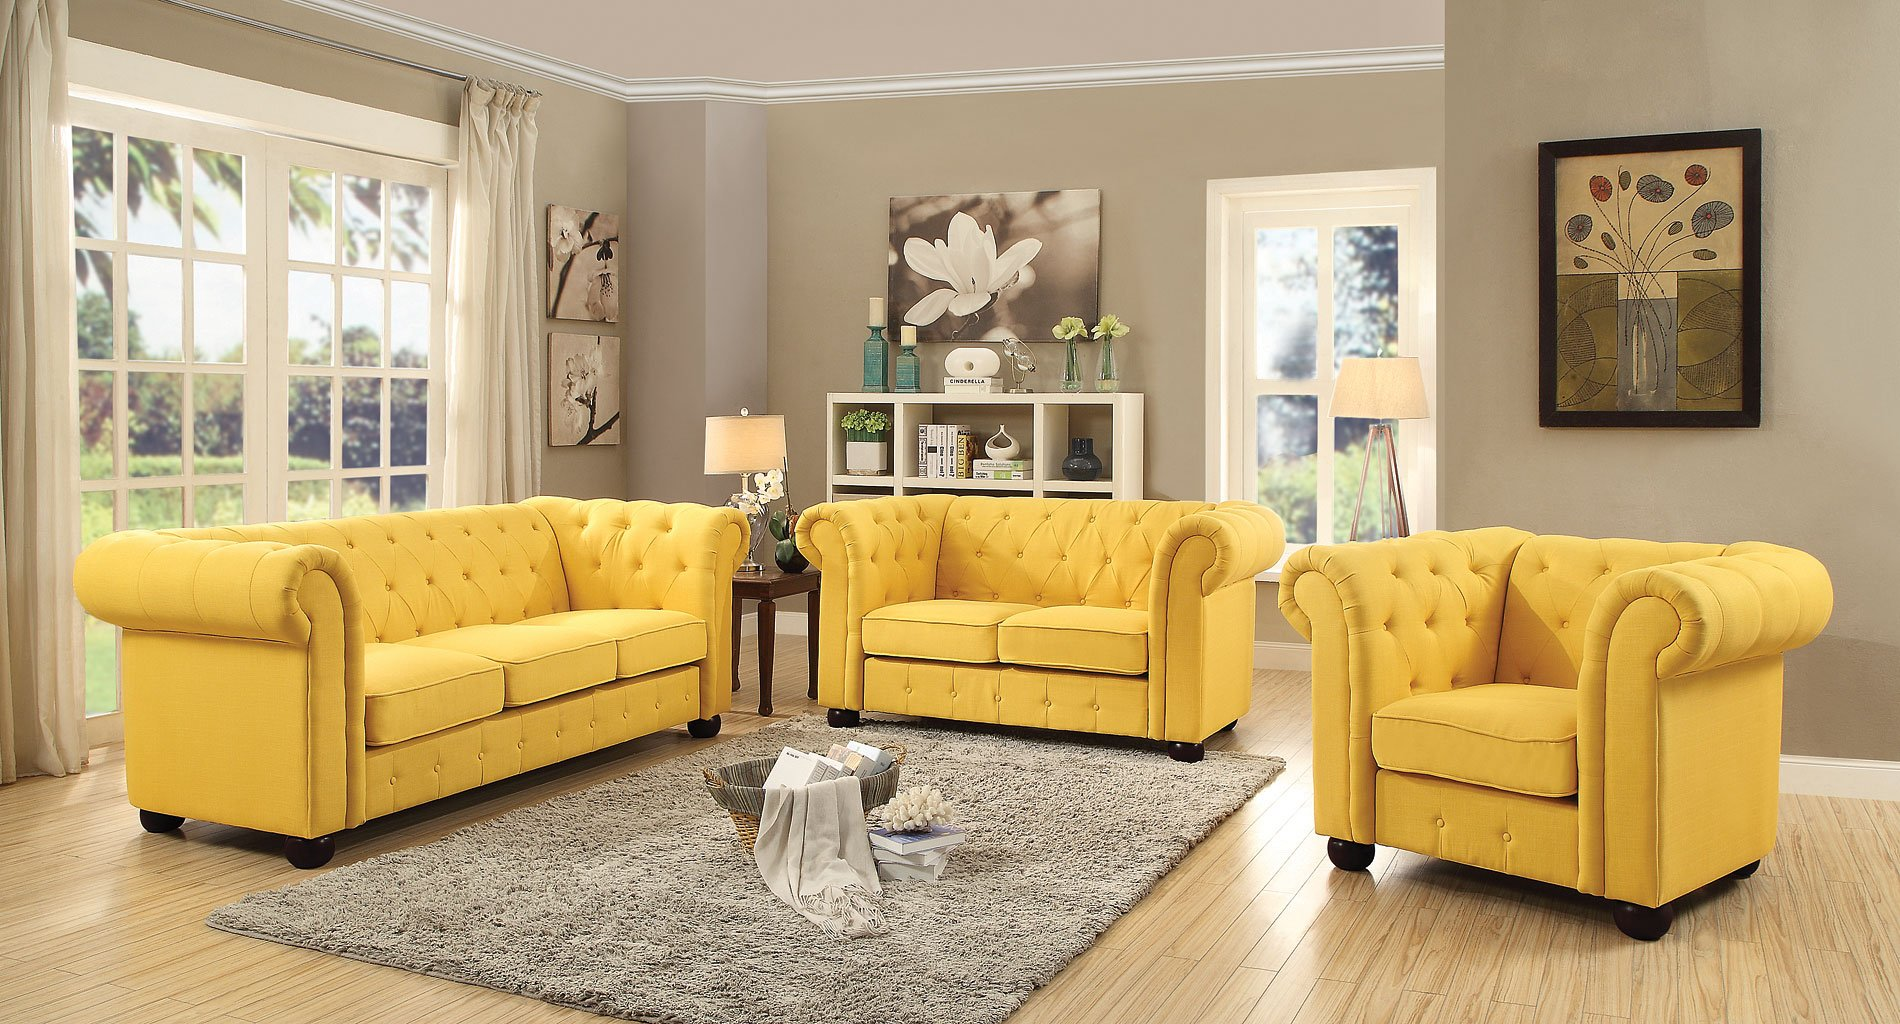 G497 Tufted Living Room Set (Yellow)